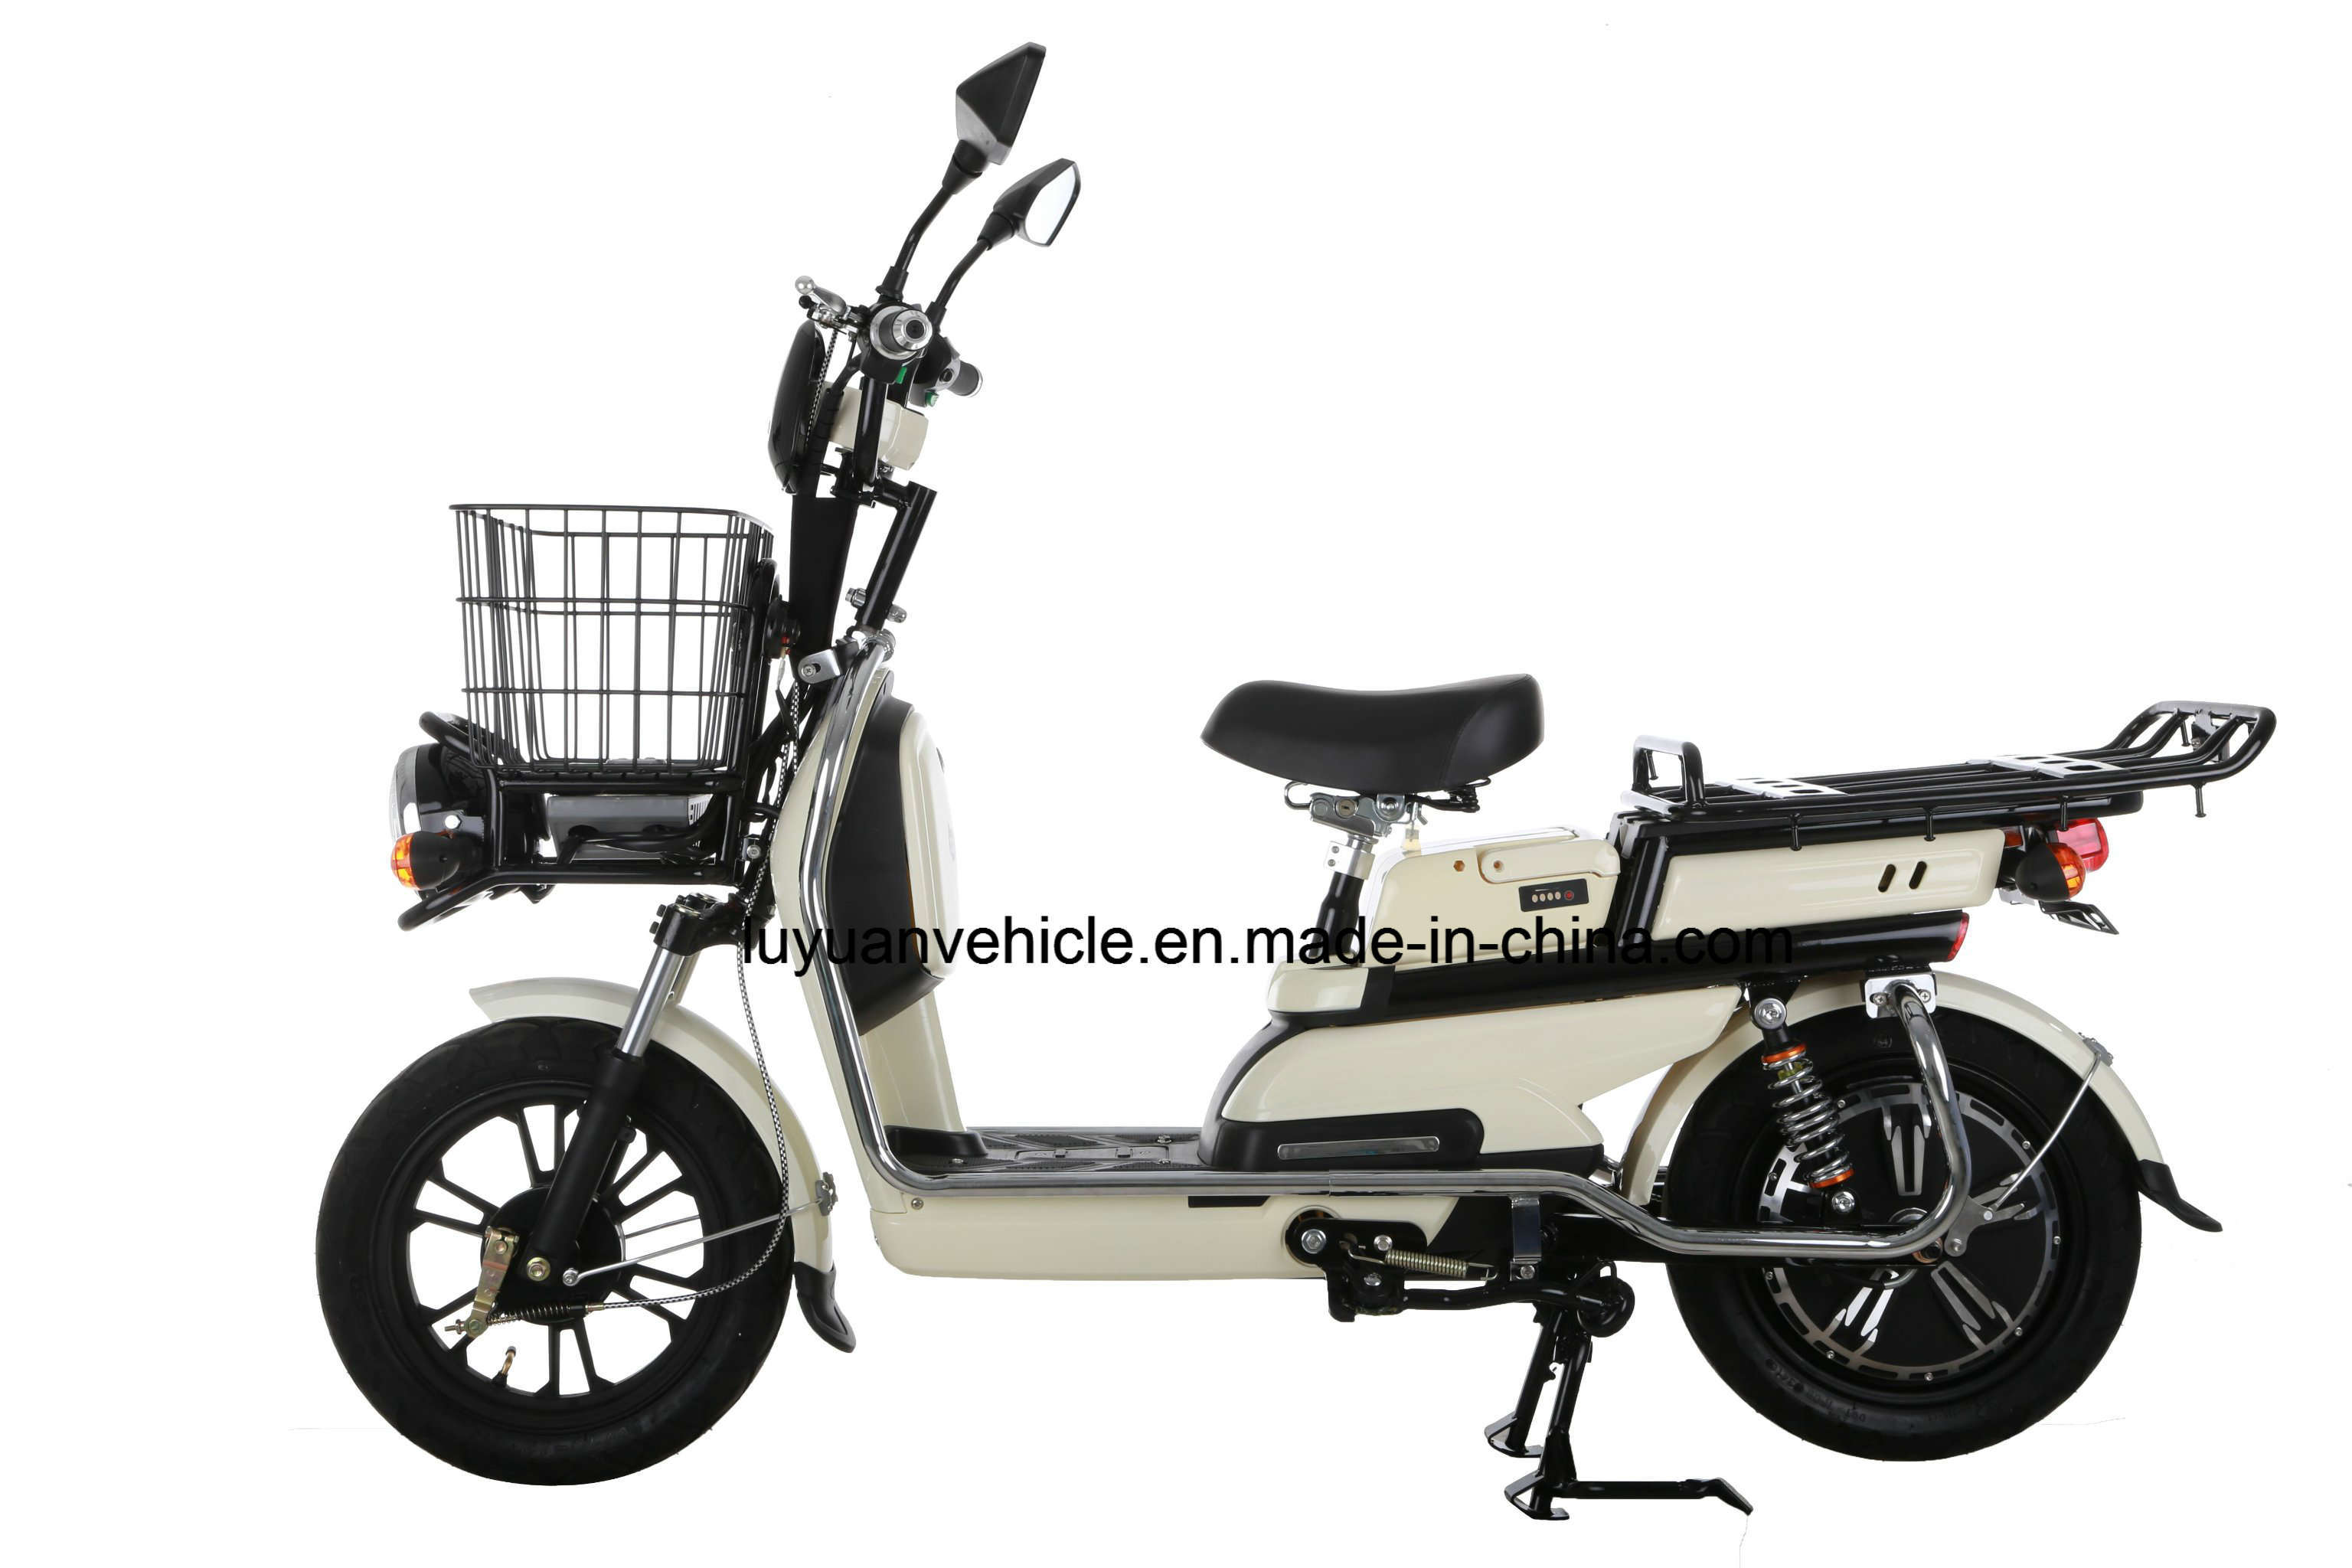 800W Utility Cargo E-Scooter with Portable Lithium Battery with Strong Loading Capacity (LLB)